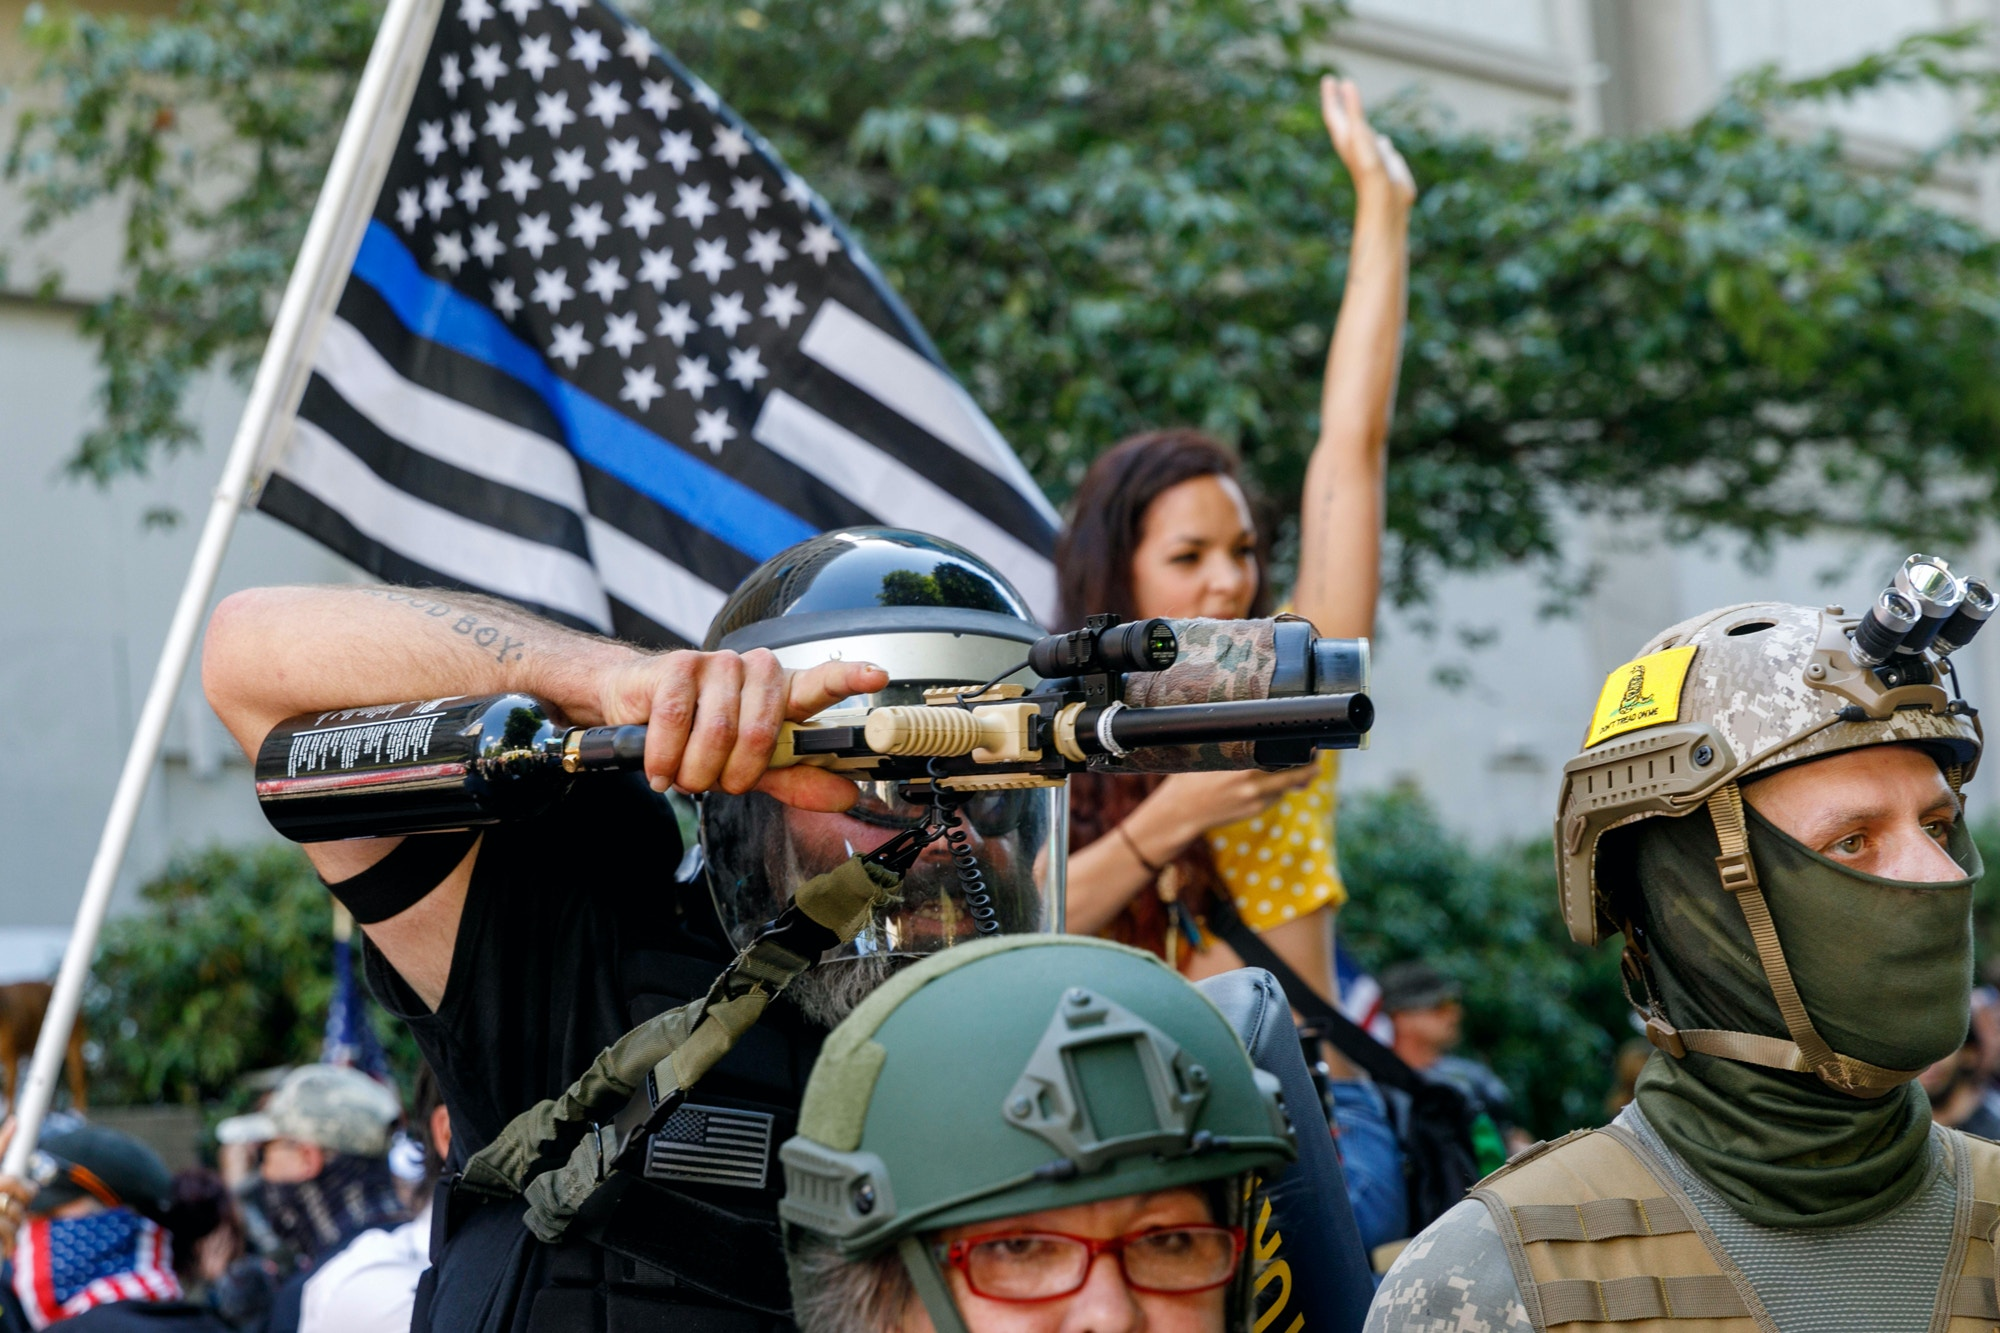 PORTLAND, OREGON, USA - AUGUST 22: Alan Swinney, a Proud Boy, fires sting-balls at counter-protesters as Right-wing demonstrators, many armed, clash violently with Black Lives Matter and Antifa counter-demonstrators, in Portland, Oregon, United States on August 22, 2020. (Photo by John Rudoff/Anadolu Agency via Getty Images)